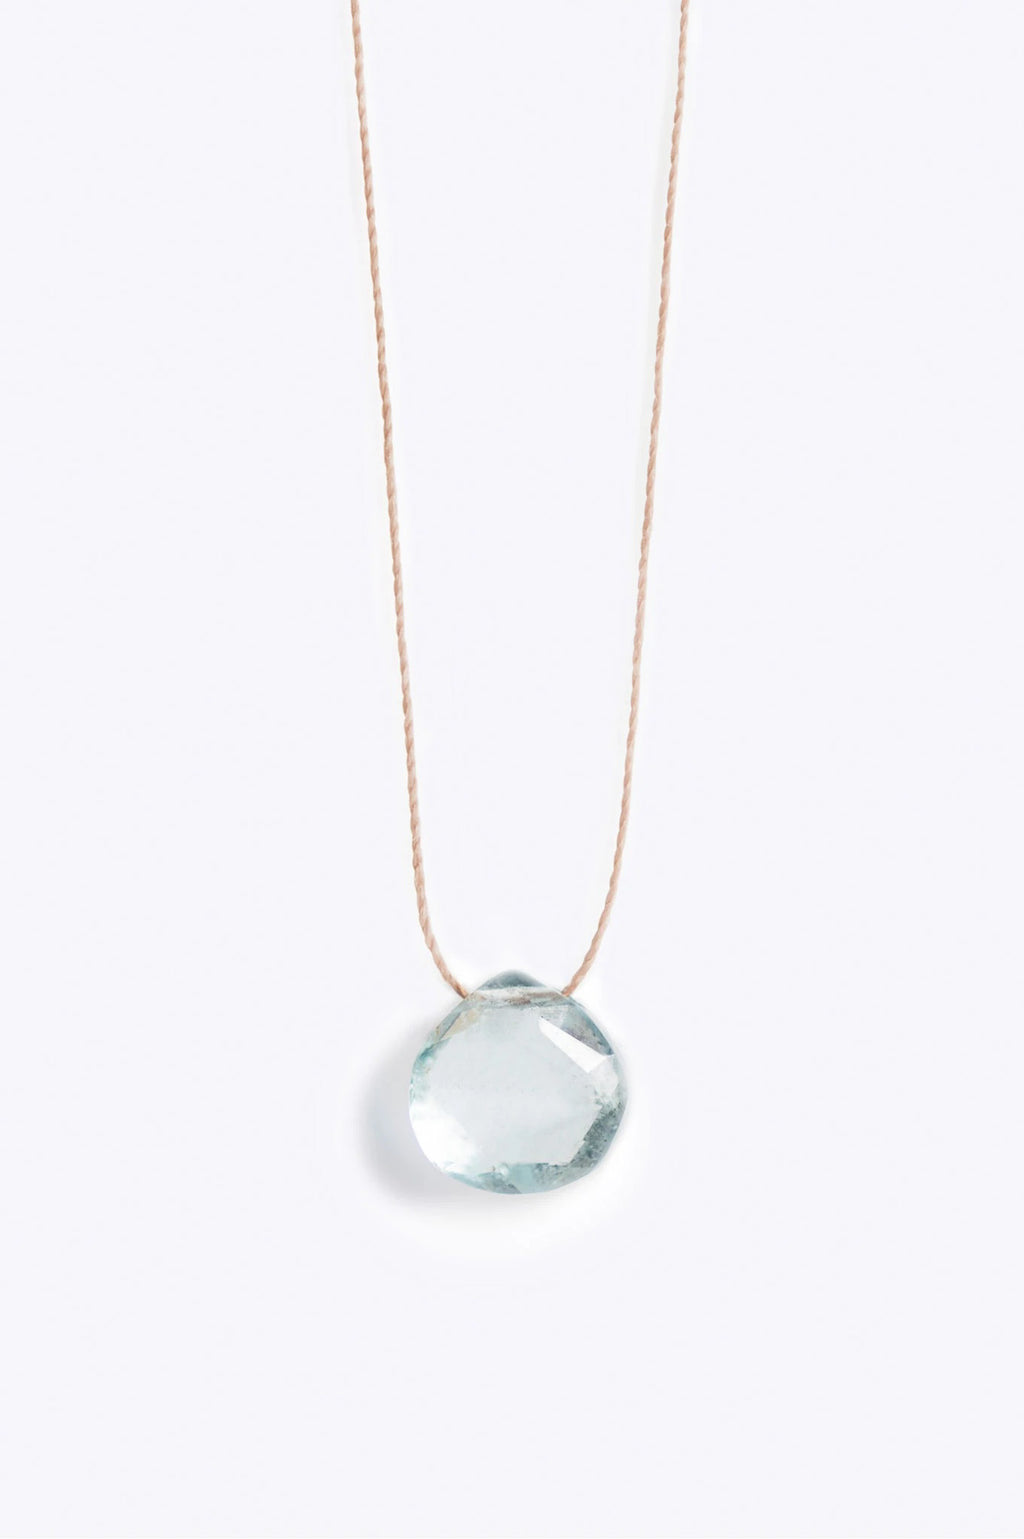 SS21 Wanderlust Aquamarine Fine Cord Necklace - The Mercantile London